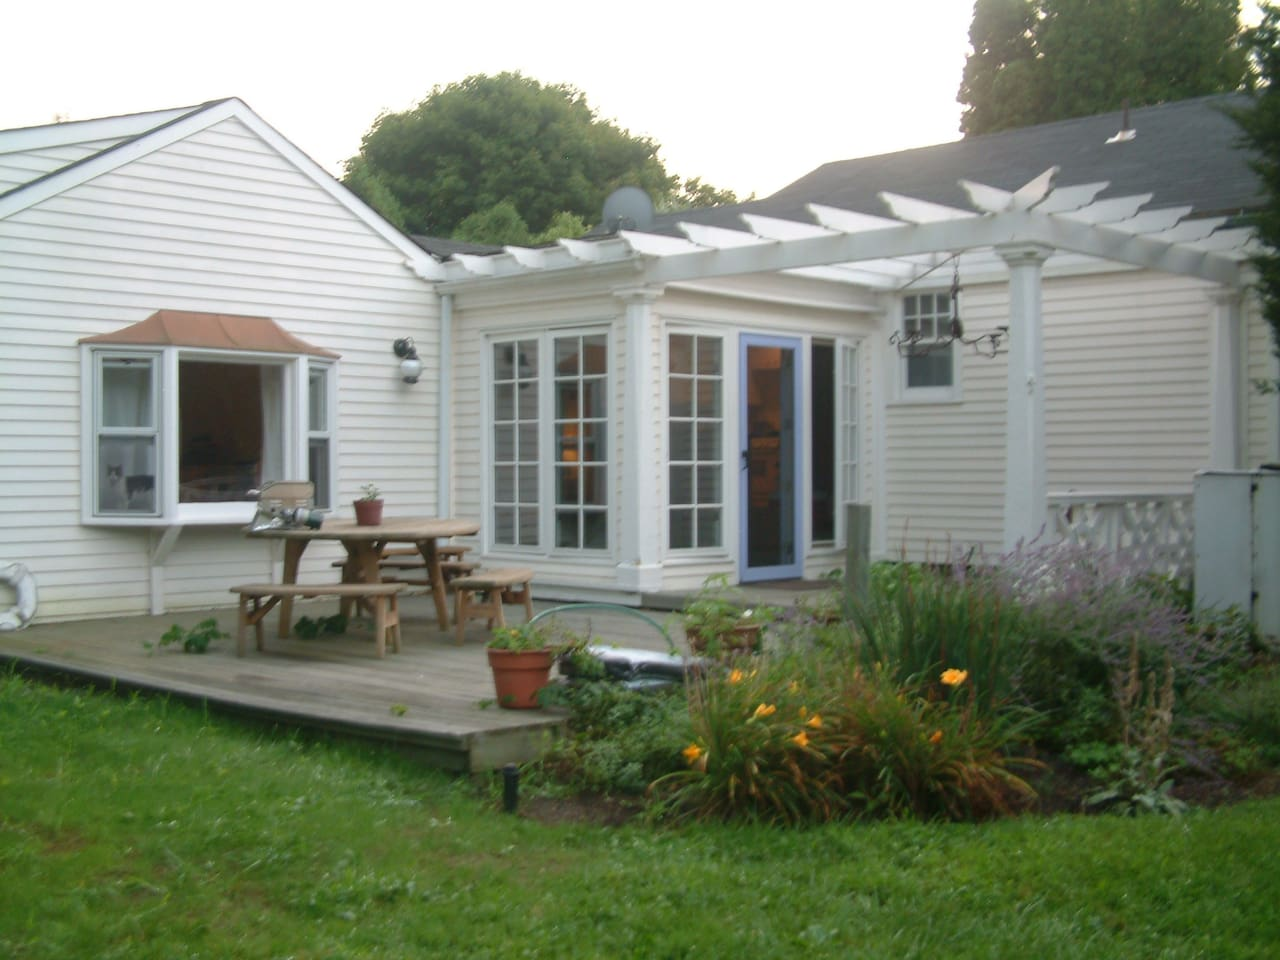 Charming Brookhaven Cottage with deck, porch and landscaped garden